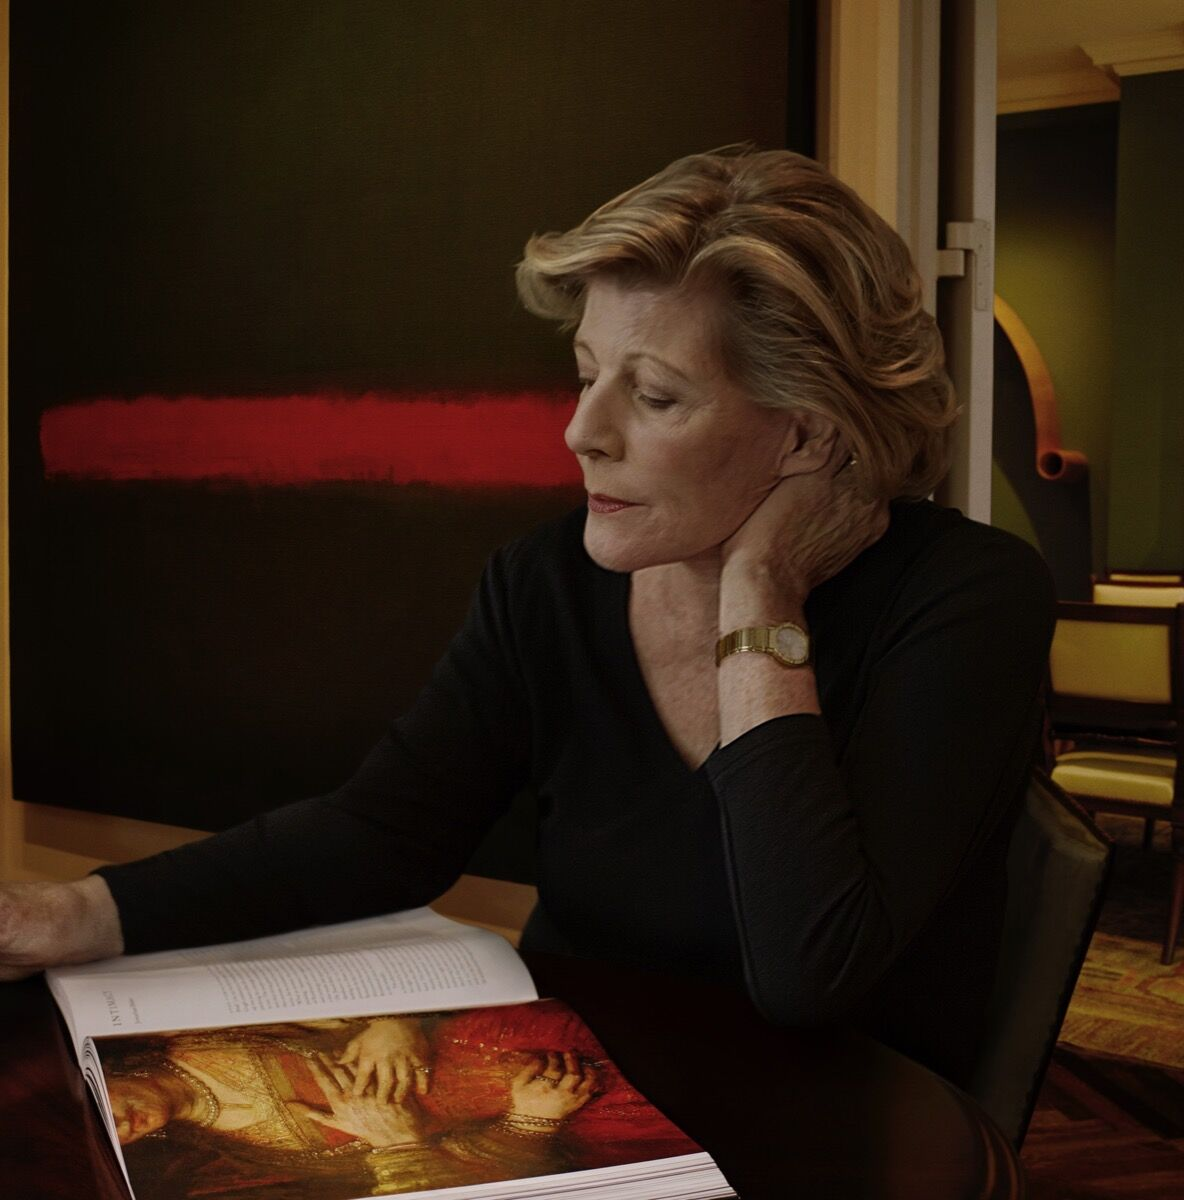 Portrait of Agnes Gund. © Annie Leibovitz. Courtesy of the Art for Justice Fund.